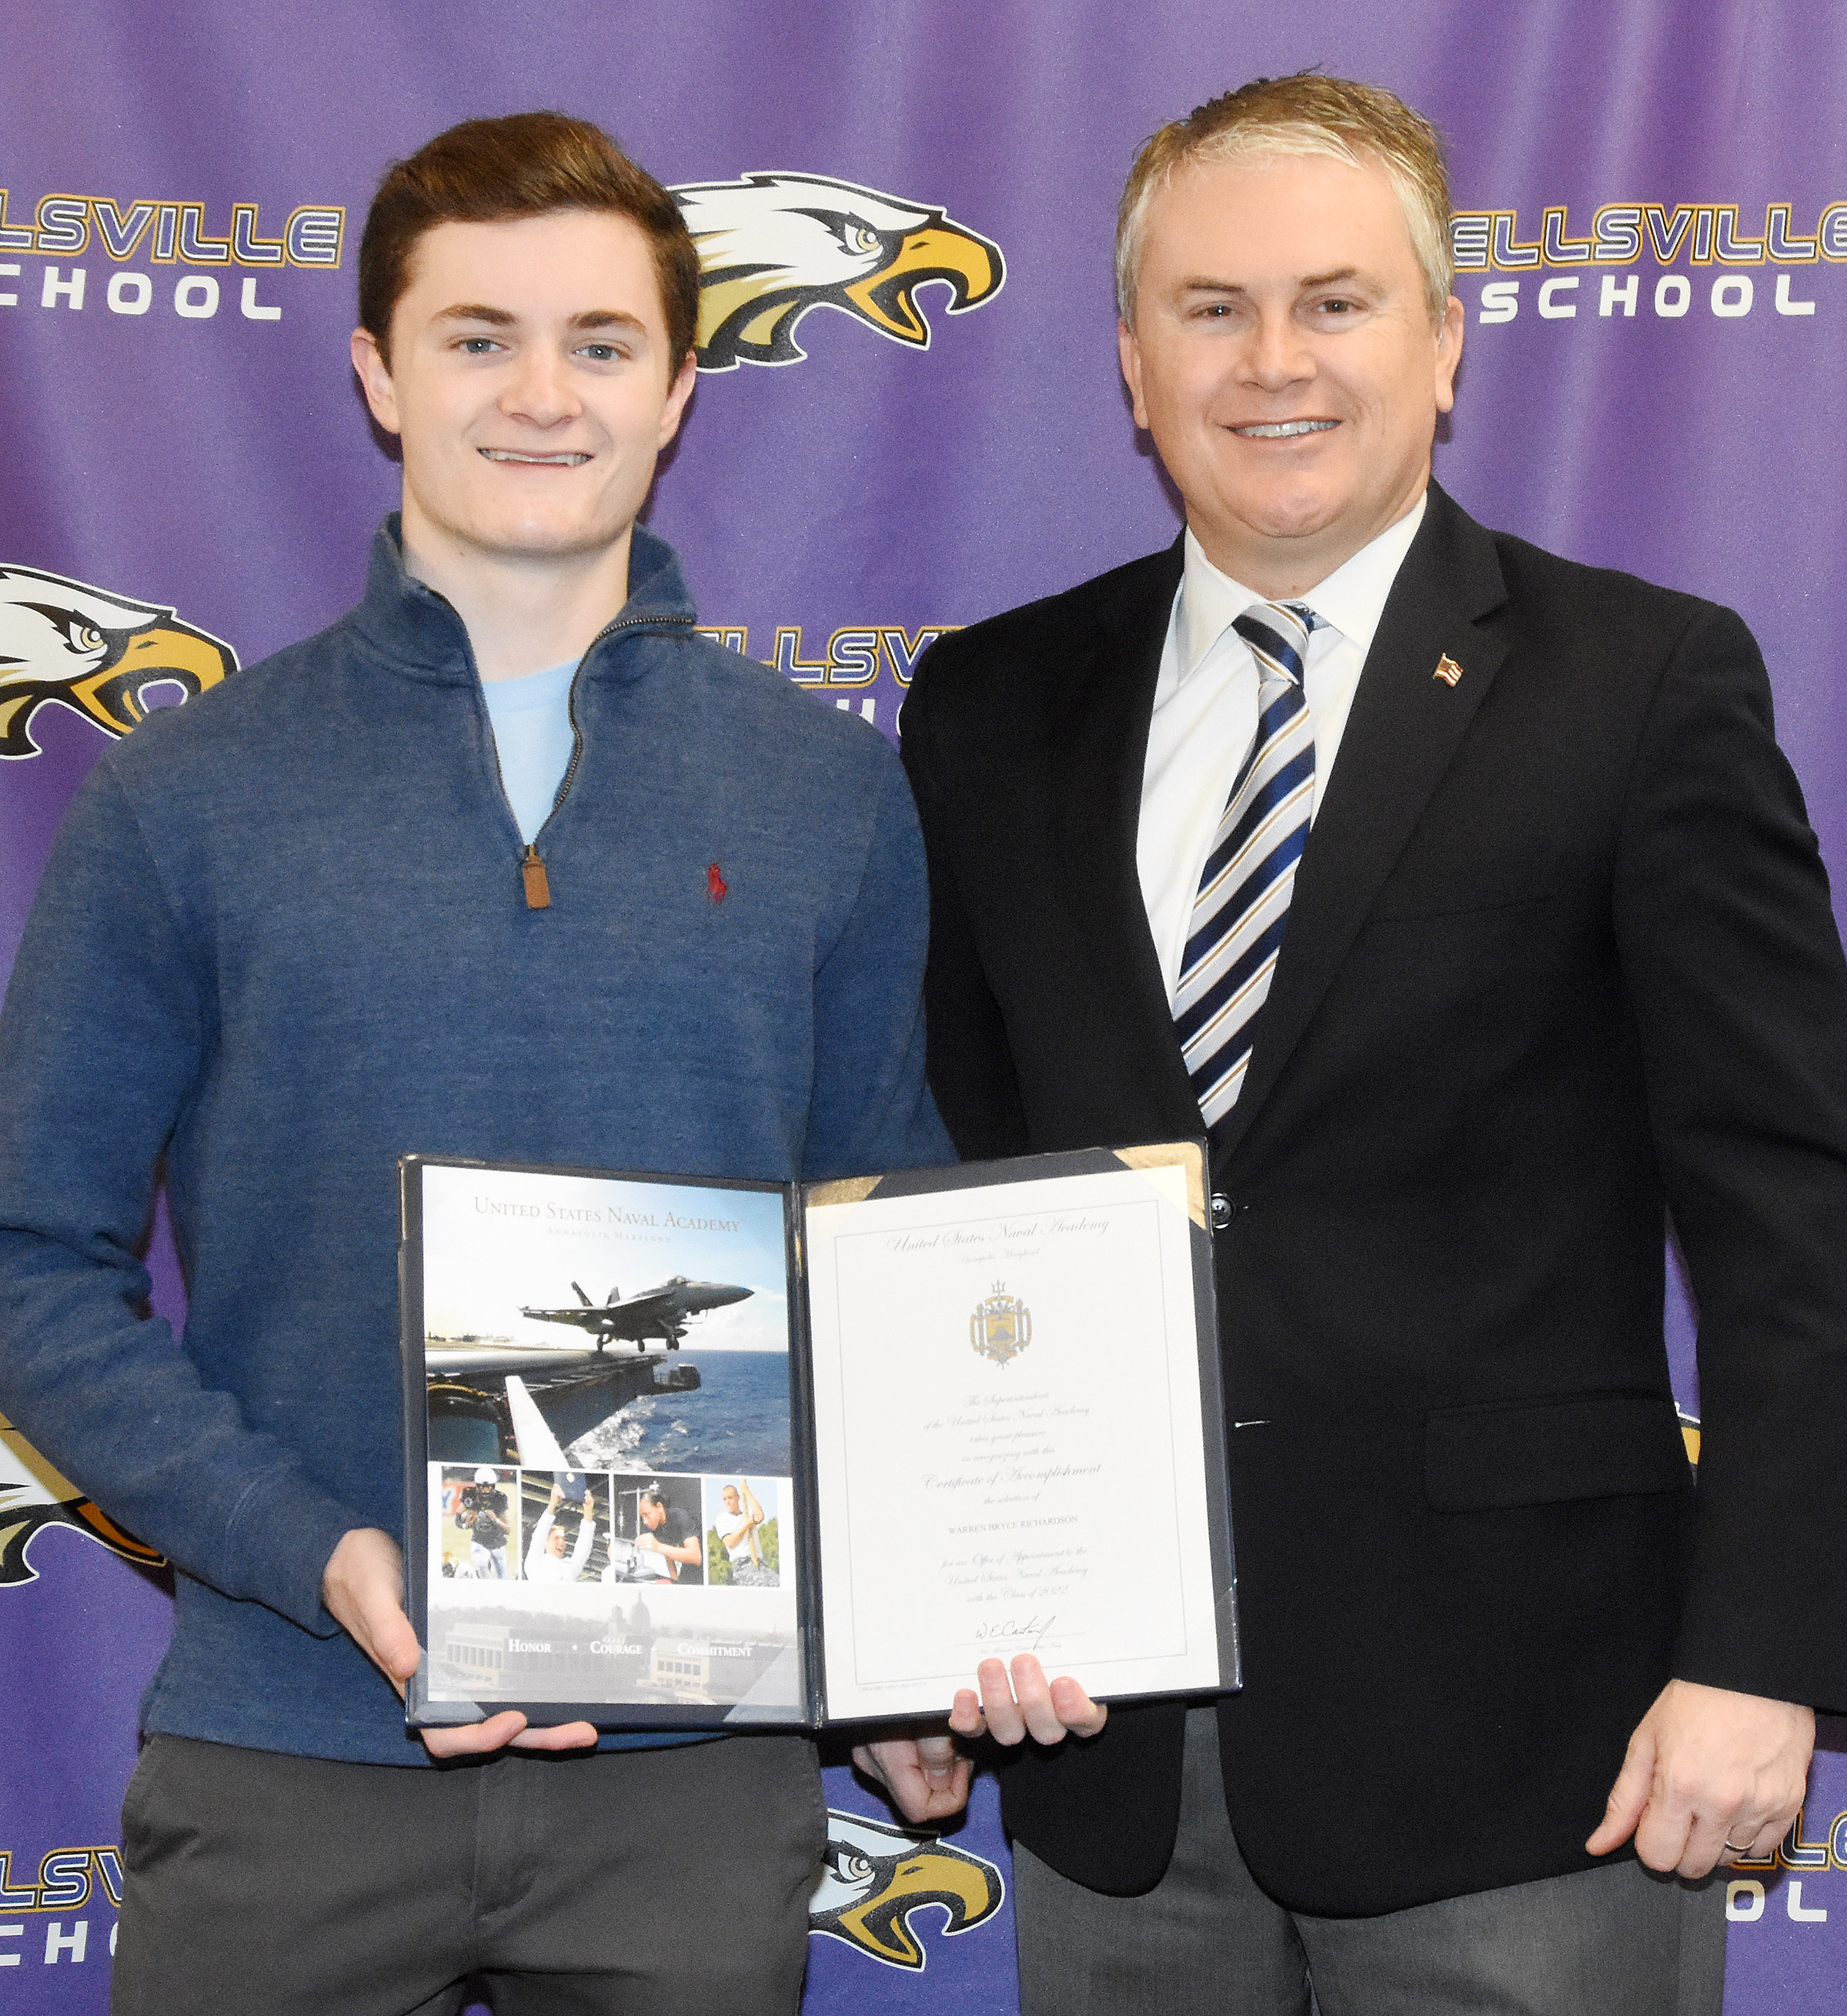 Campbellsville High School senior Bryce Richardson has been appointed to the U.S. Naval Academy, based on a nomination from U.S. Rep. James Comer, R-Ky. Comer came to CHS on Tuesday, Jan. 23, to meet with Richardson.